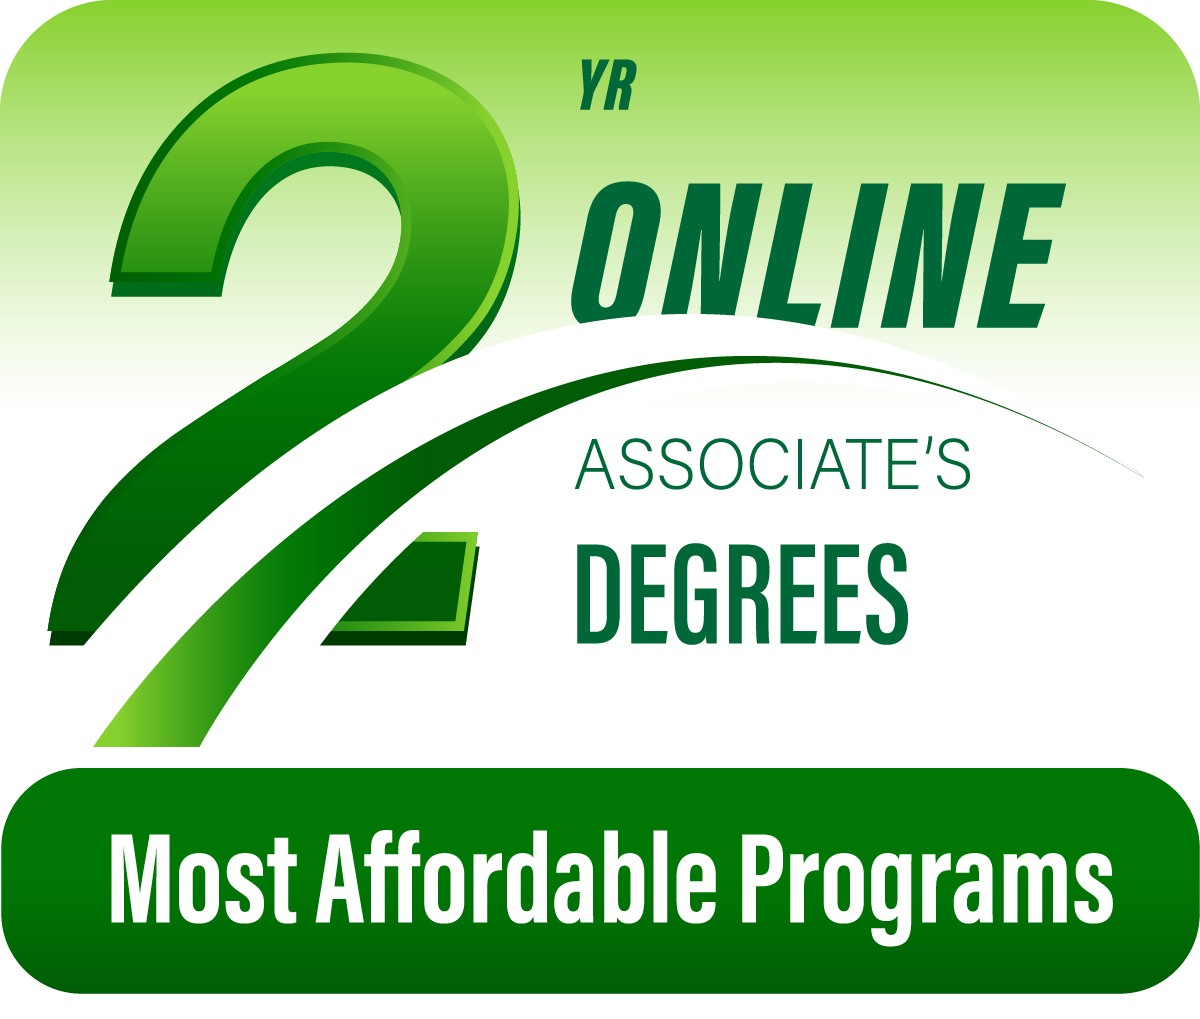 7e315d0ad4e Top 15 Affordable Associate's in Web Development Online 2019. Most  Affordable Programs